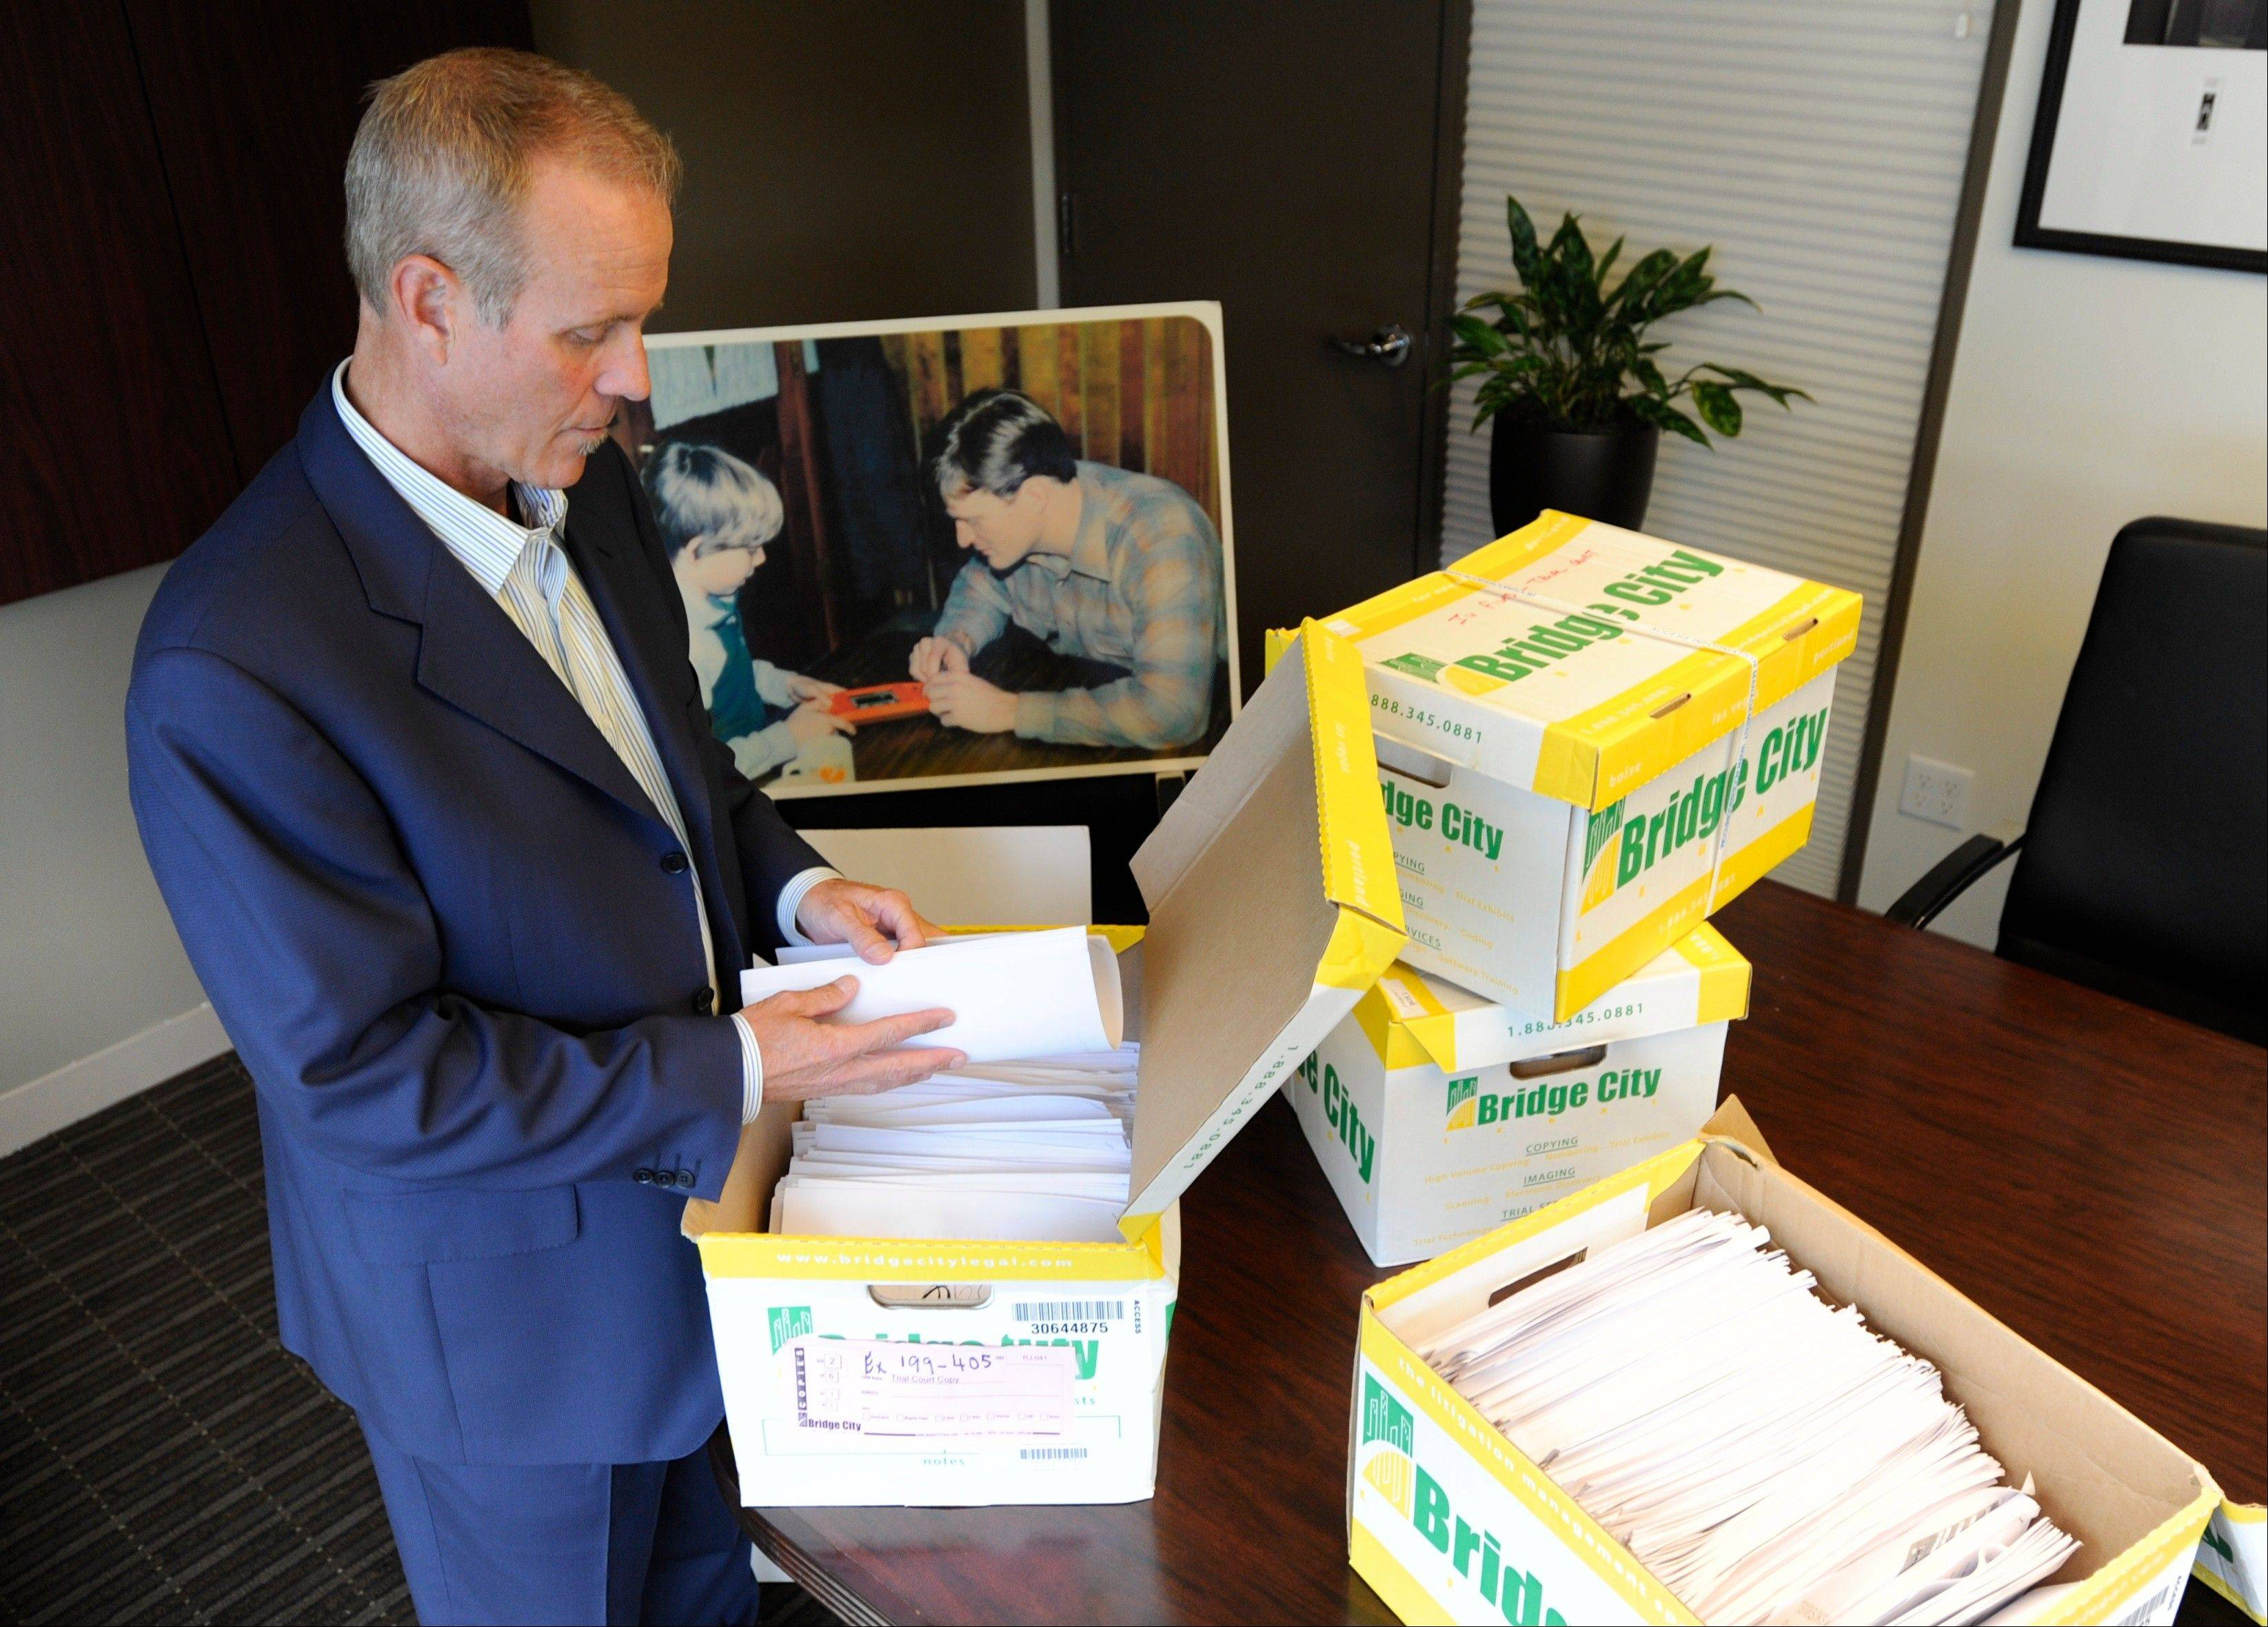 Portland attorney Kelly Clark examines some of the 14,500 pages of previously confidential documents created by the Boy Scouts of America concerning child sexual abuse within the organization Tuesday in preparation for releasing the documents Thursday as he stands in his office in Portland, Ore. The Boy Scouts of America fought to keep those files confidential.